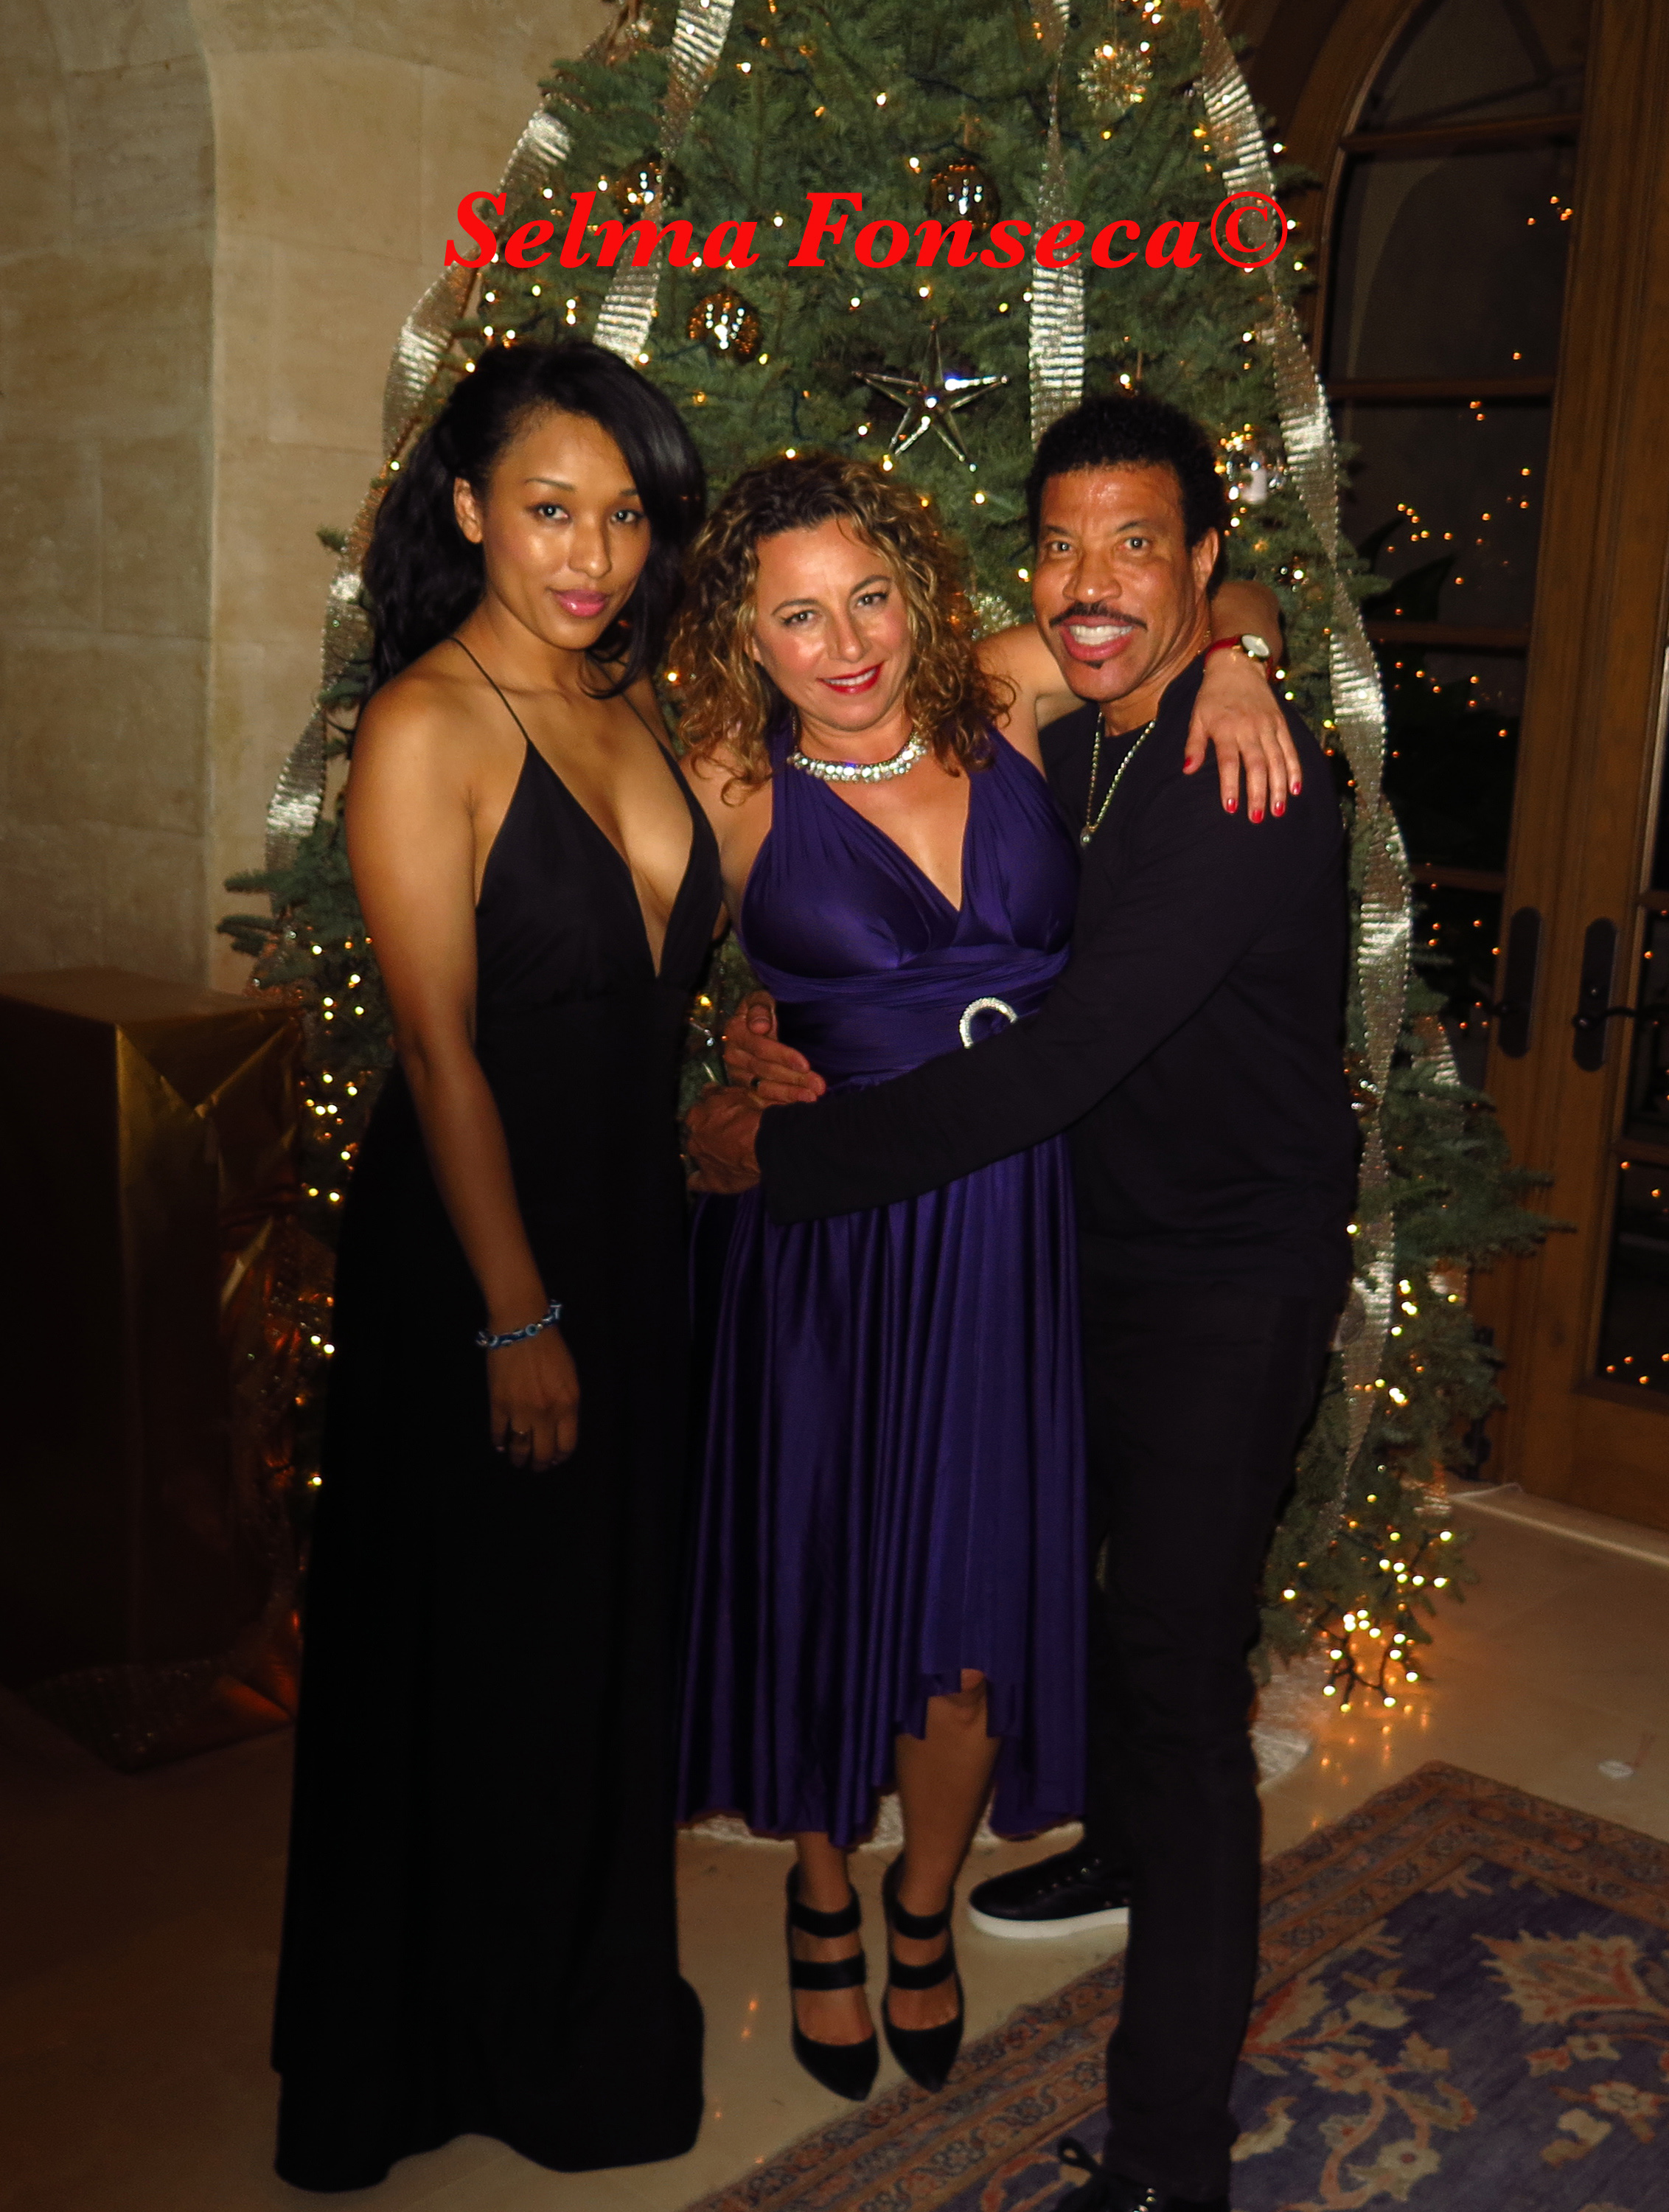 Lisa Parigi, Selma Fonseca and Lionel Richie celebrating Christmas